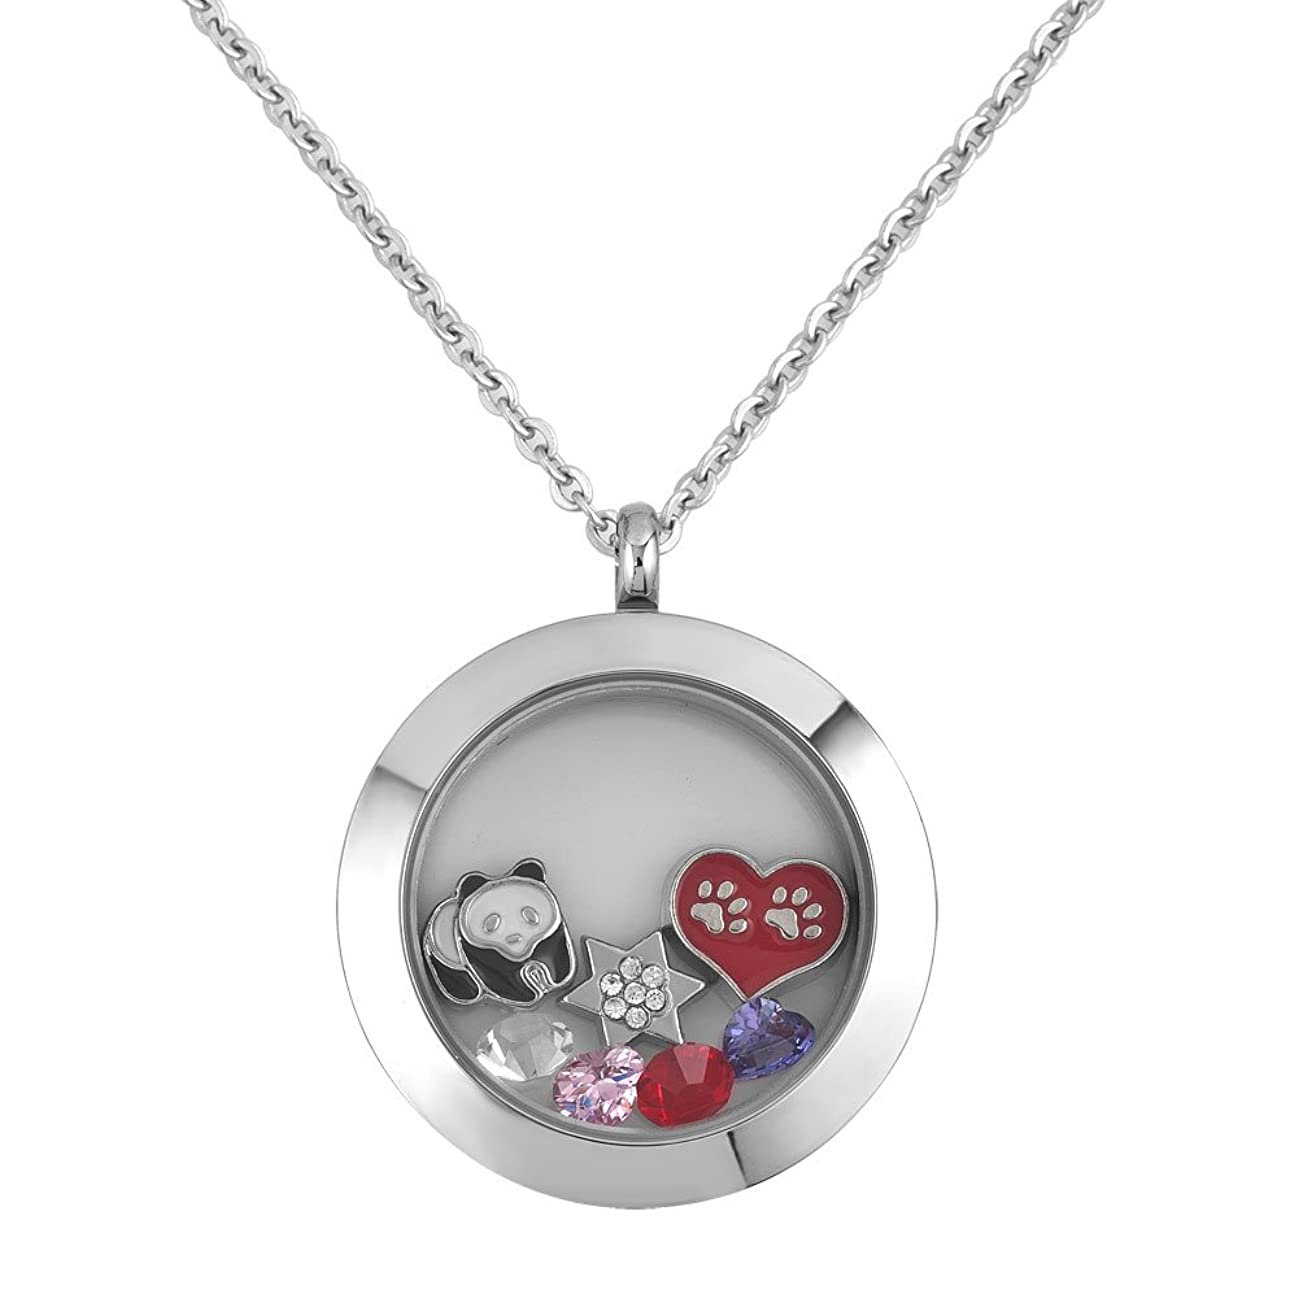 Q&Locket Panda Star Animal Floating Charms Glass Living Memory Locket Pendant Necklace